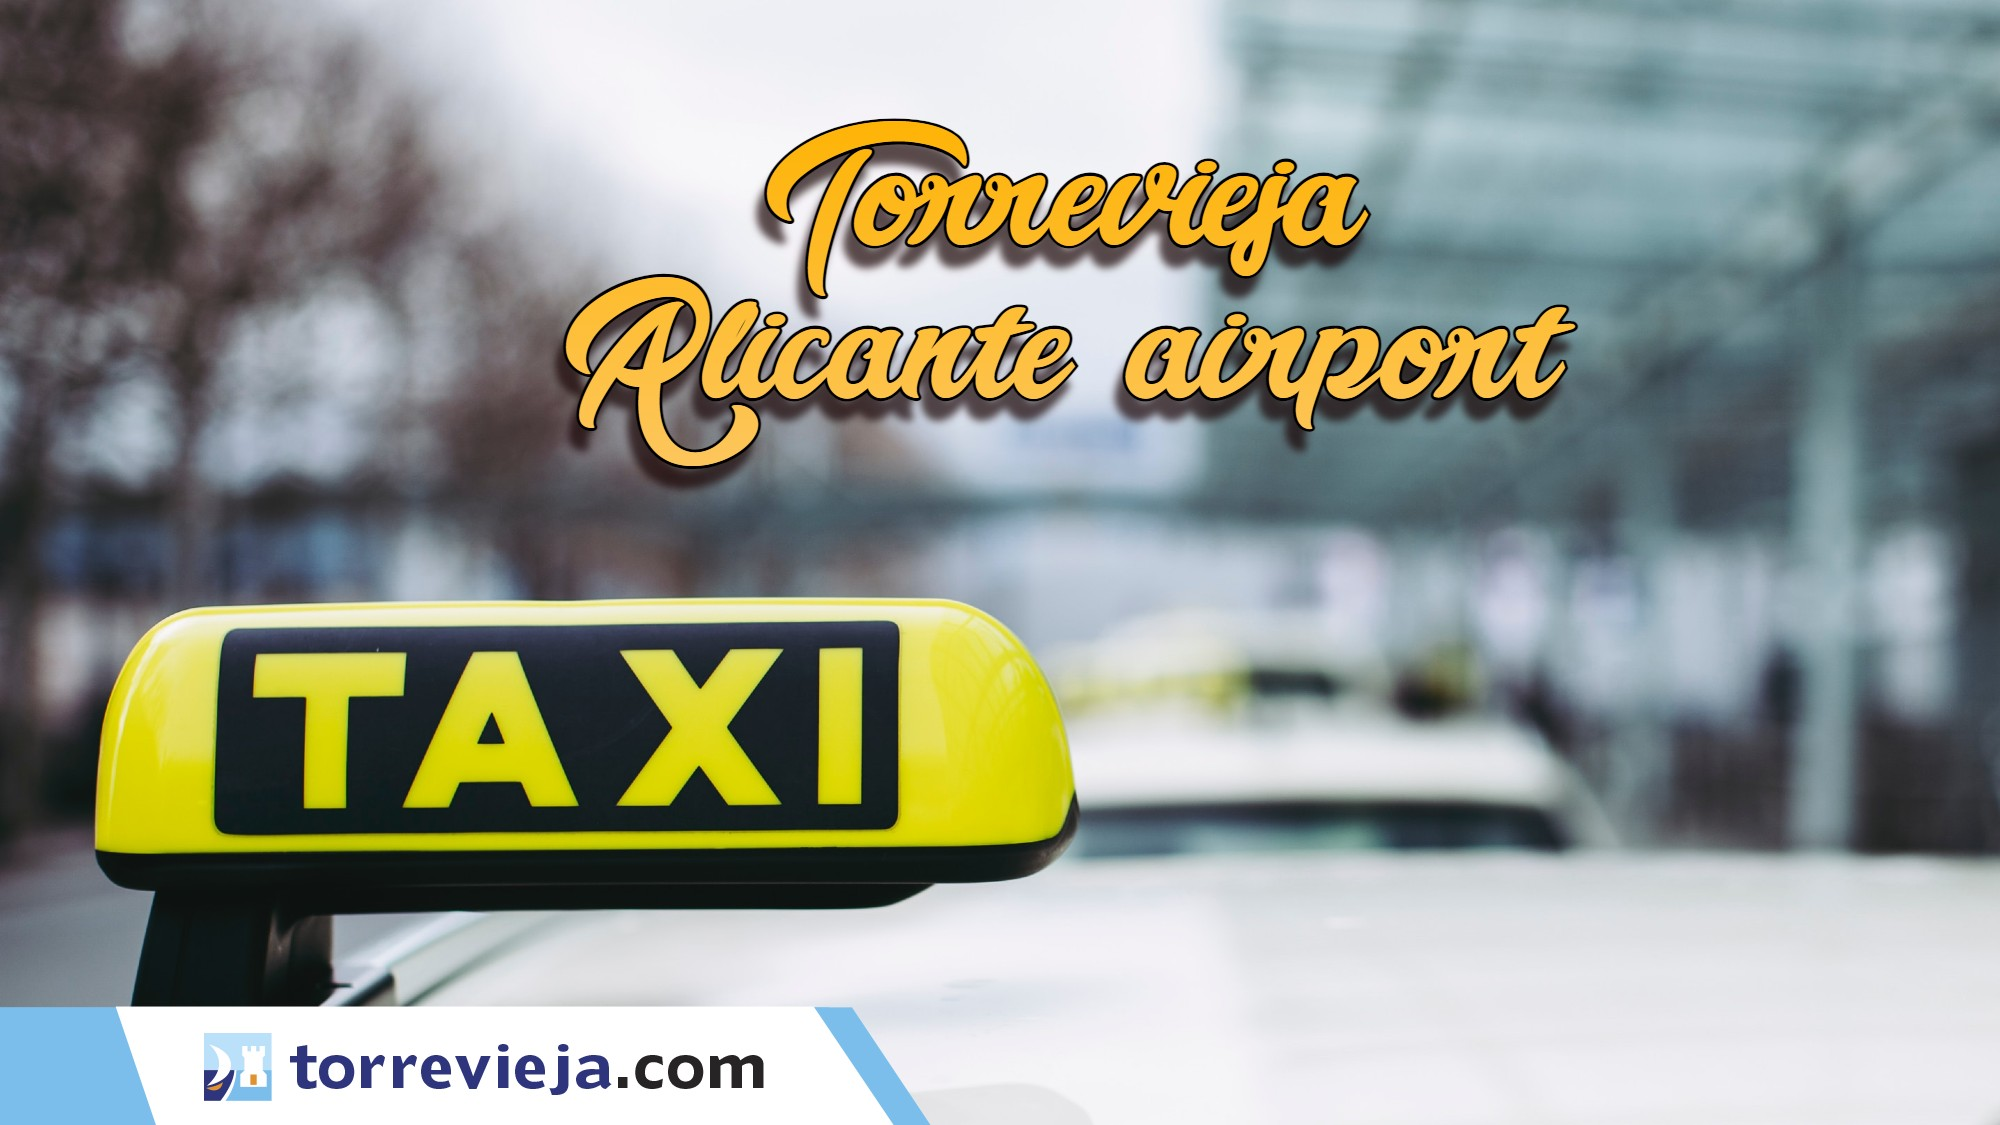 Taxi from Torrevieja to Alicante airport